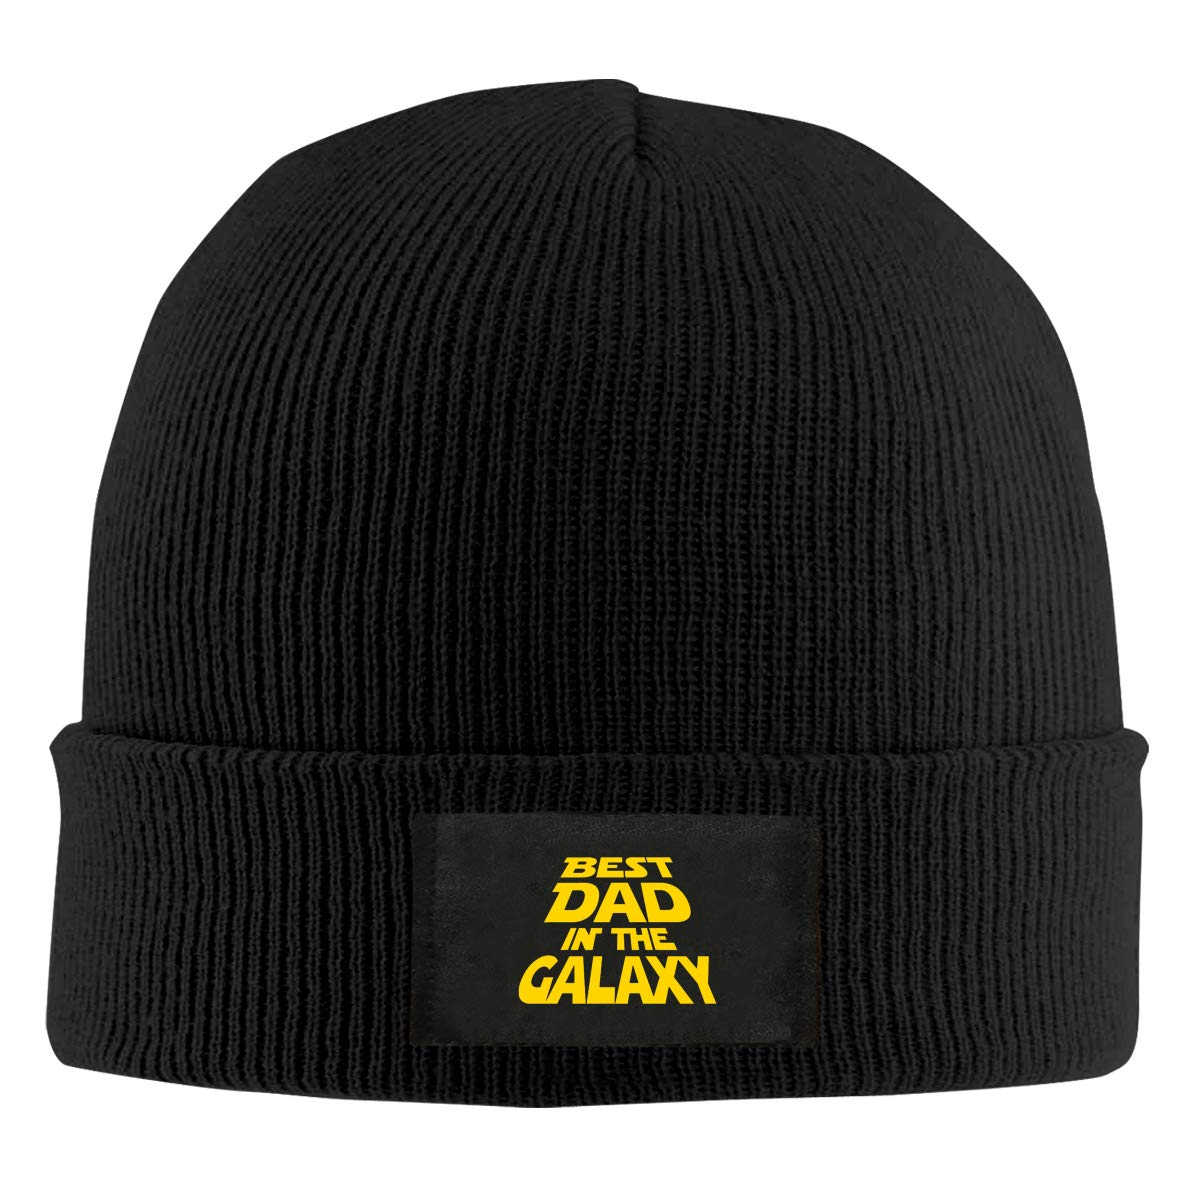 7b7139b96a9cba DAD Galaxy Mens Winter Slouchy Beanie Warm Knit Hats Personalized Watch Hat  Wool Baggy Slouchy Skull Cap Black at Amazon Men's Clothing store: